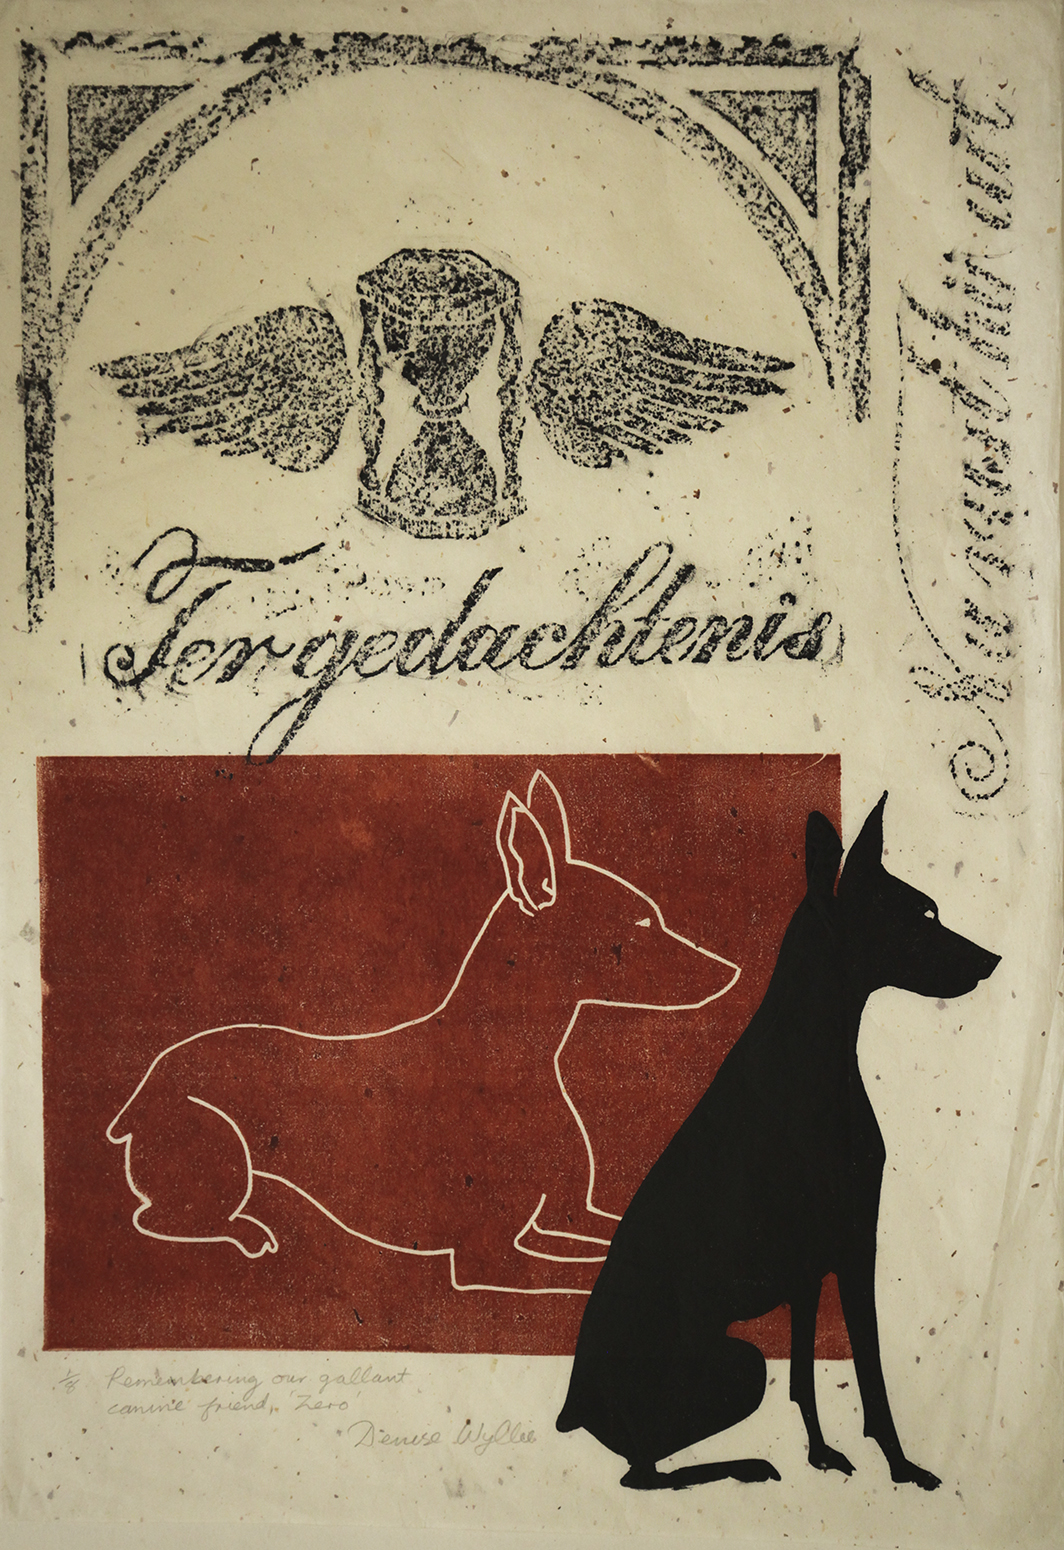 Denise Wyllie mono type relief print and rubbing titled Remembering our gallant canine friend Zero